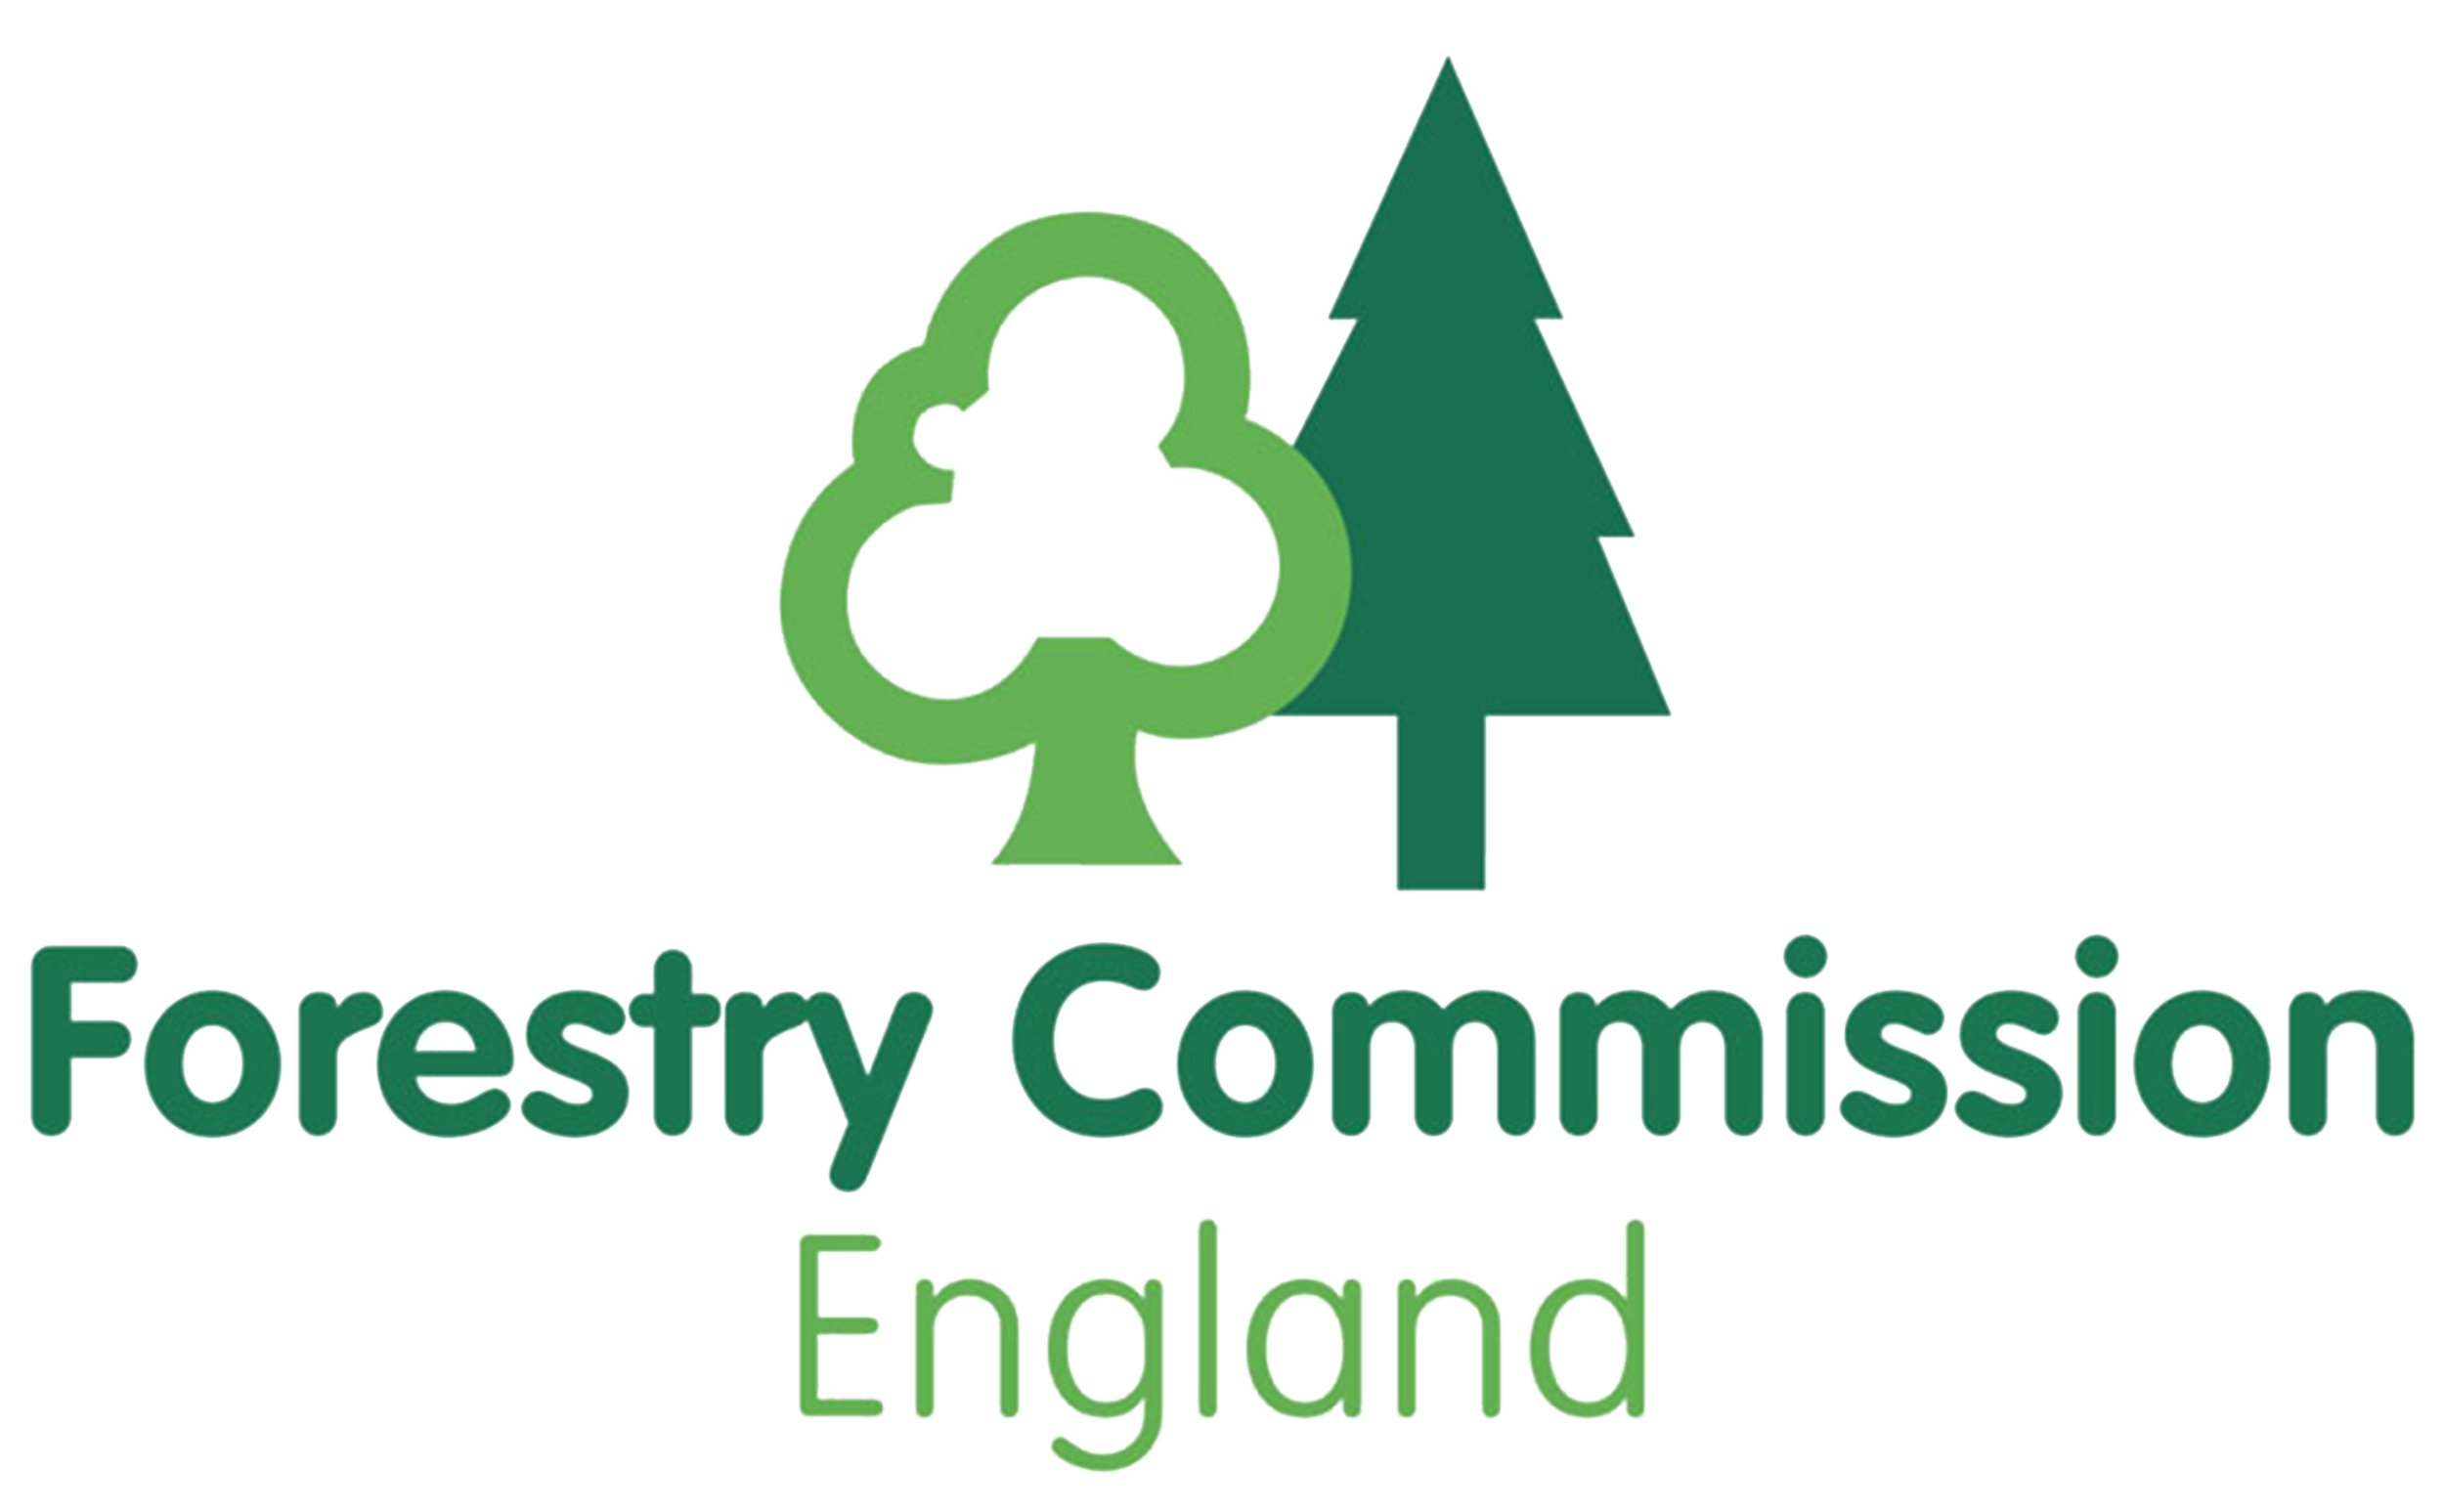 ForestryCommission.png